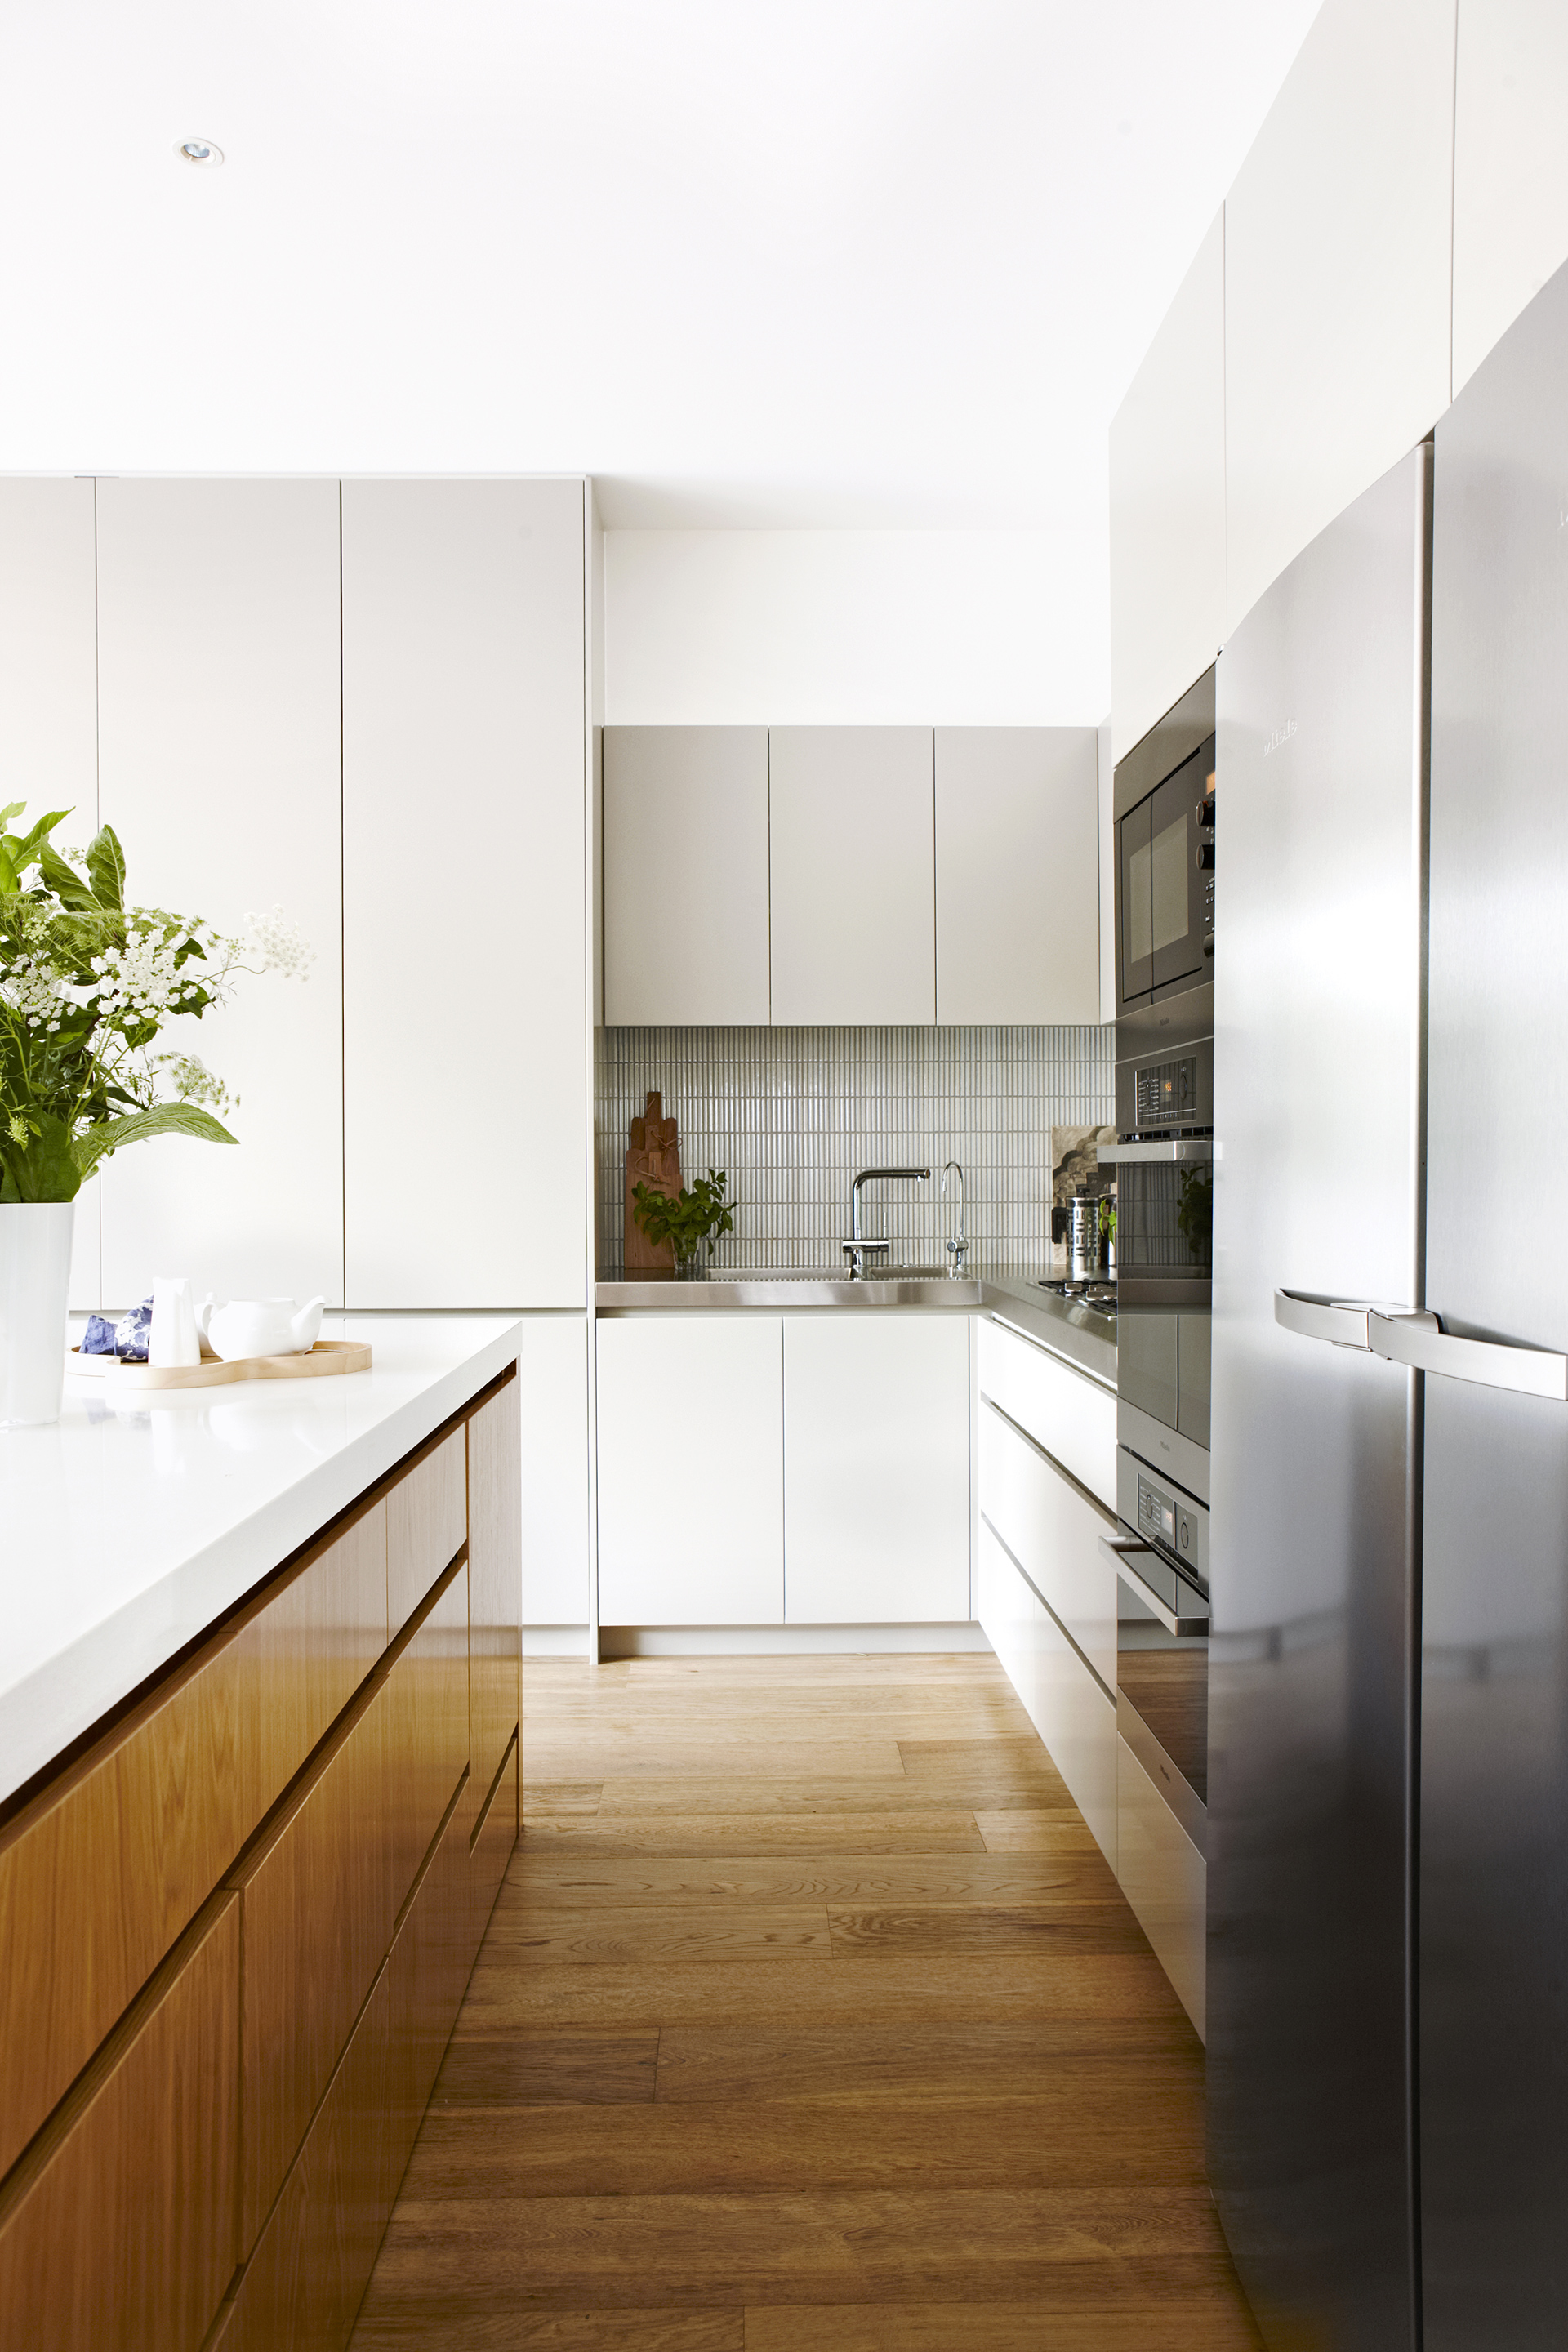 Flat Front Kitchen Cabinets A Quick On Guide On Popular Kitchen Cabinet Door Styles Nu